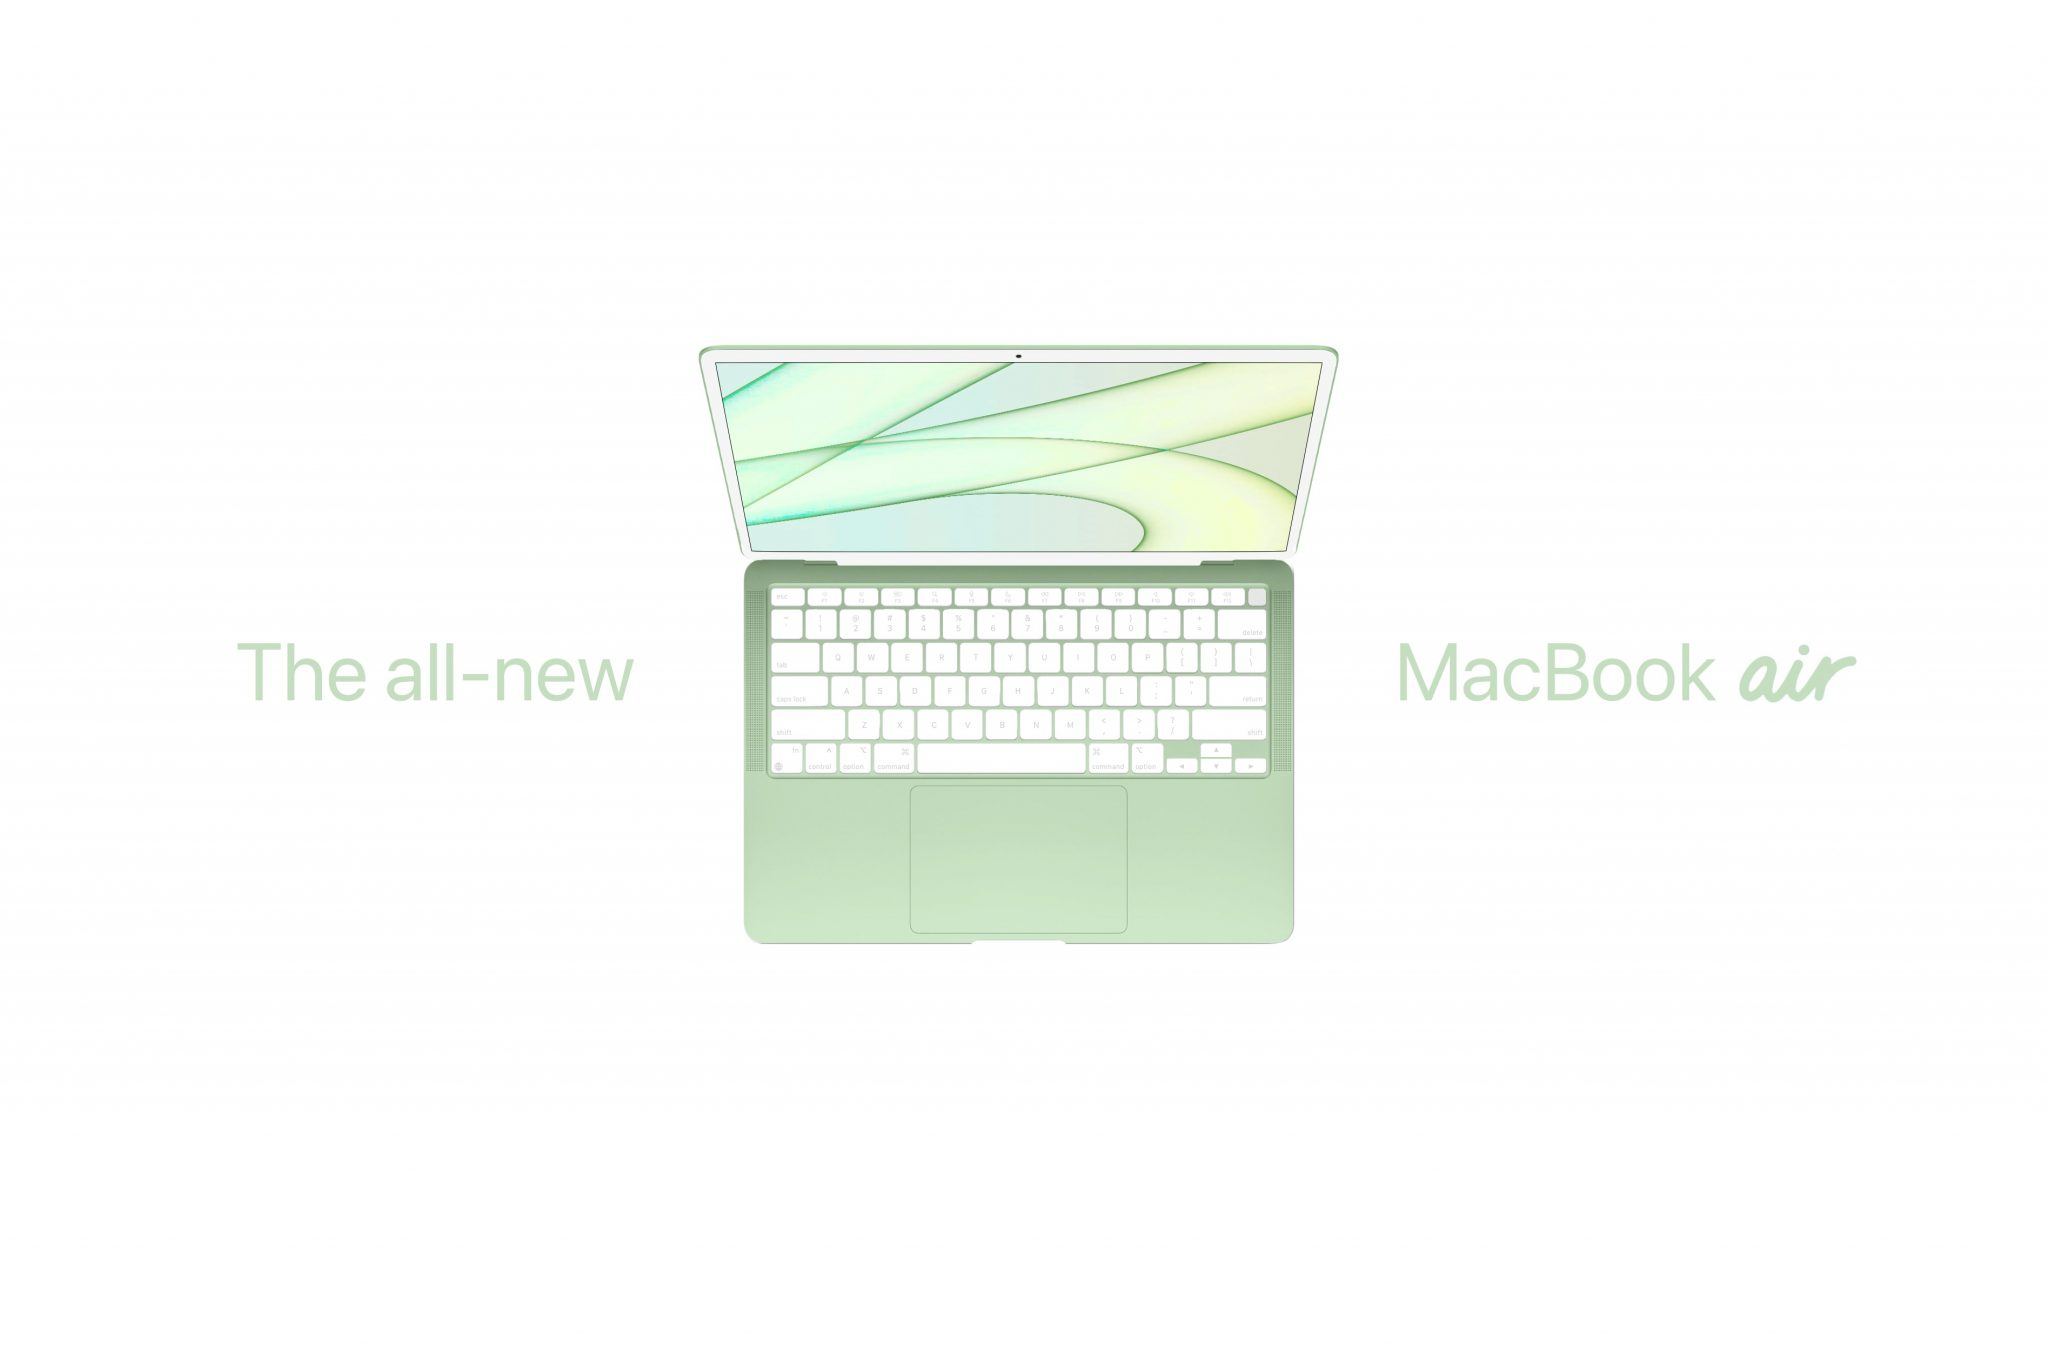 Check Out This MacBook Concept Based on 2021 M1 iMac